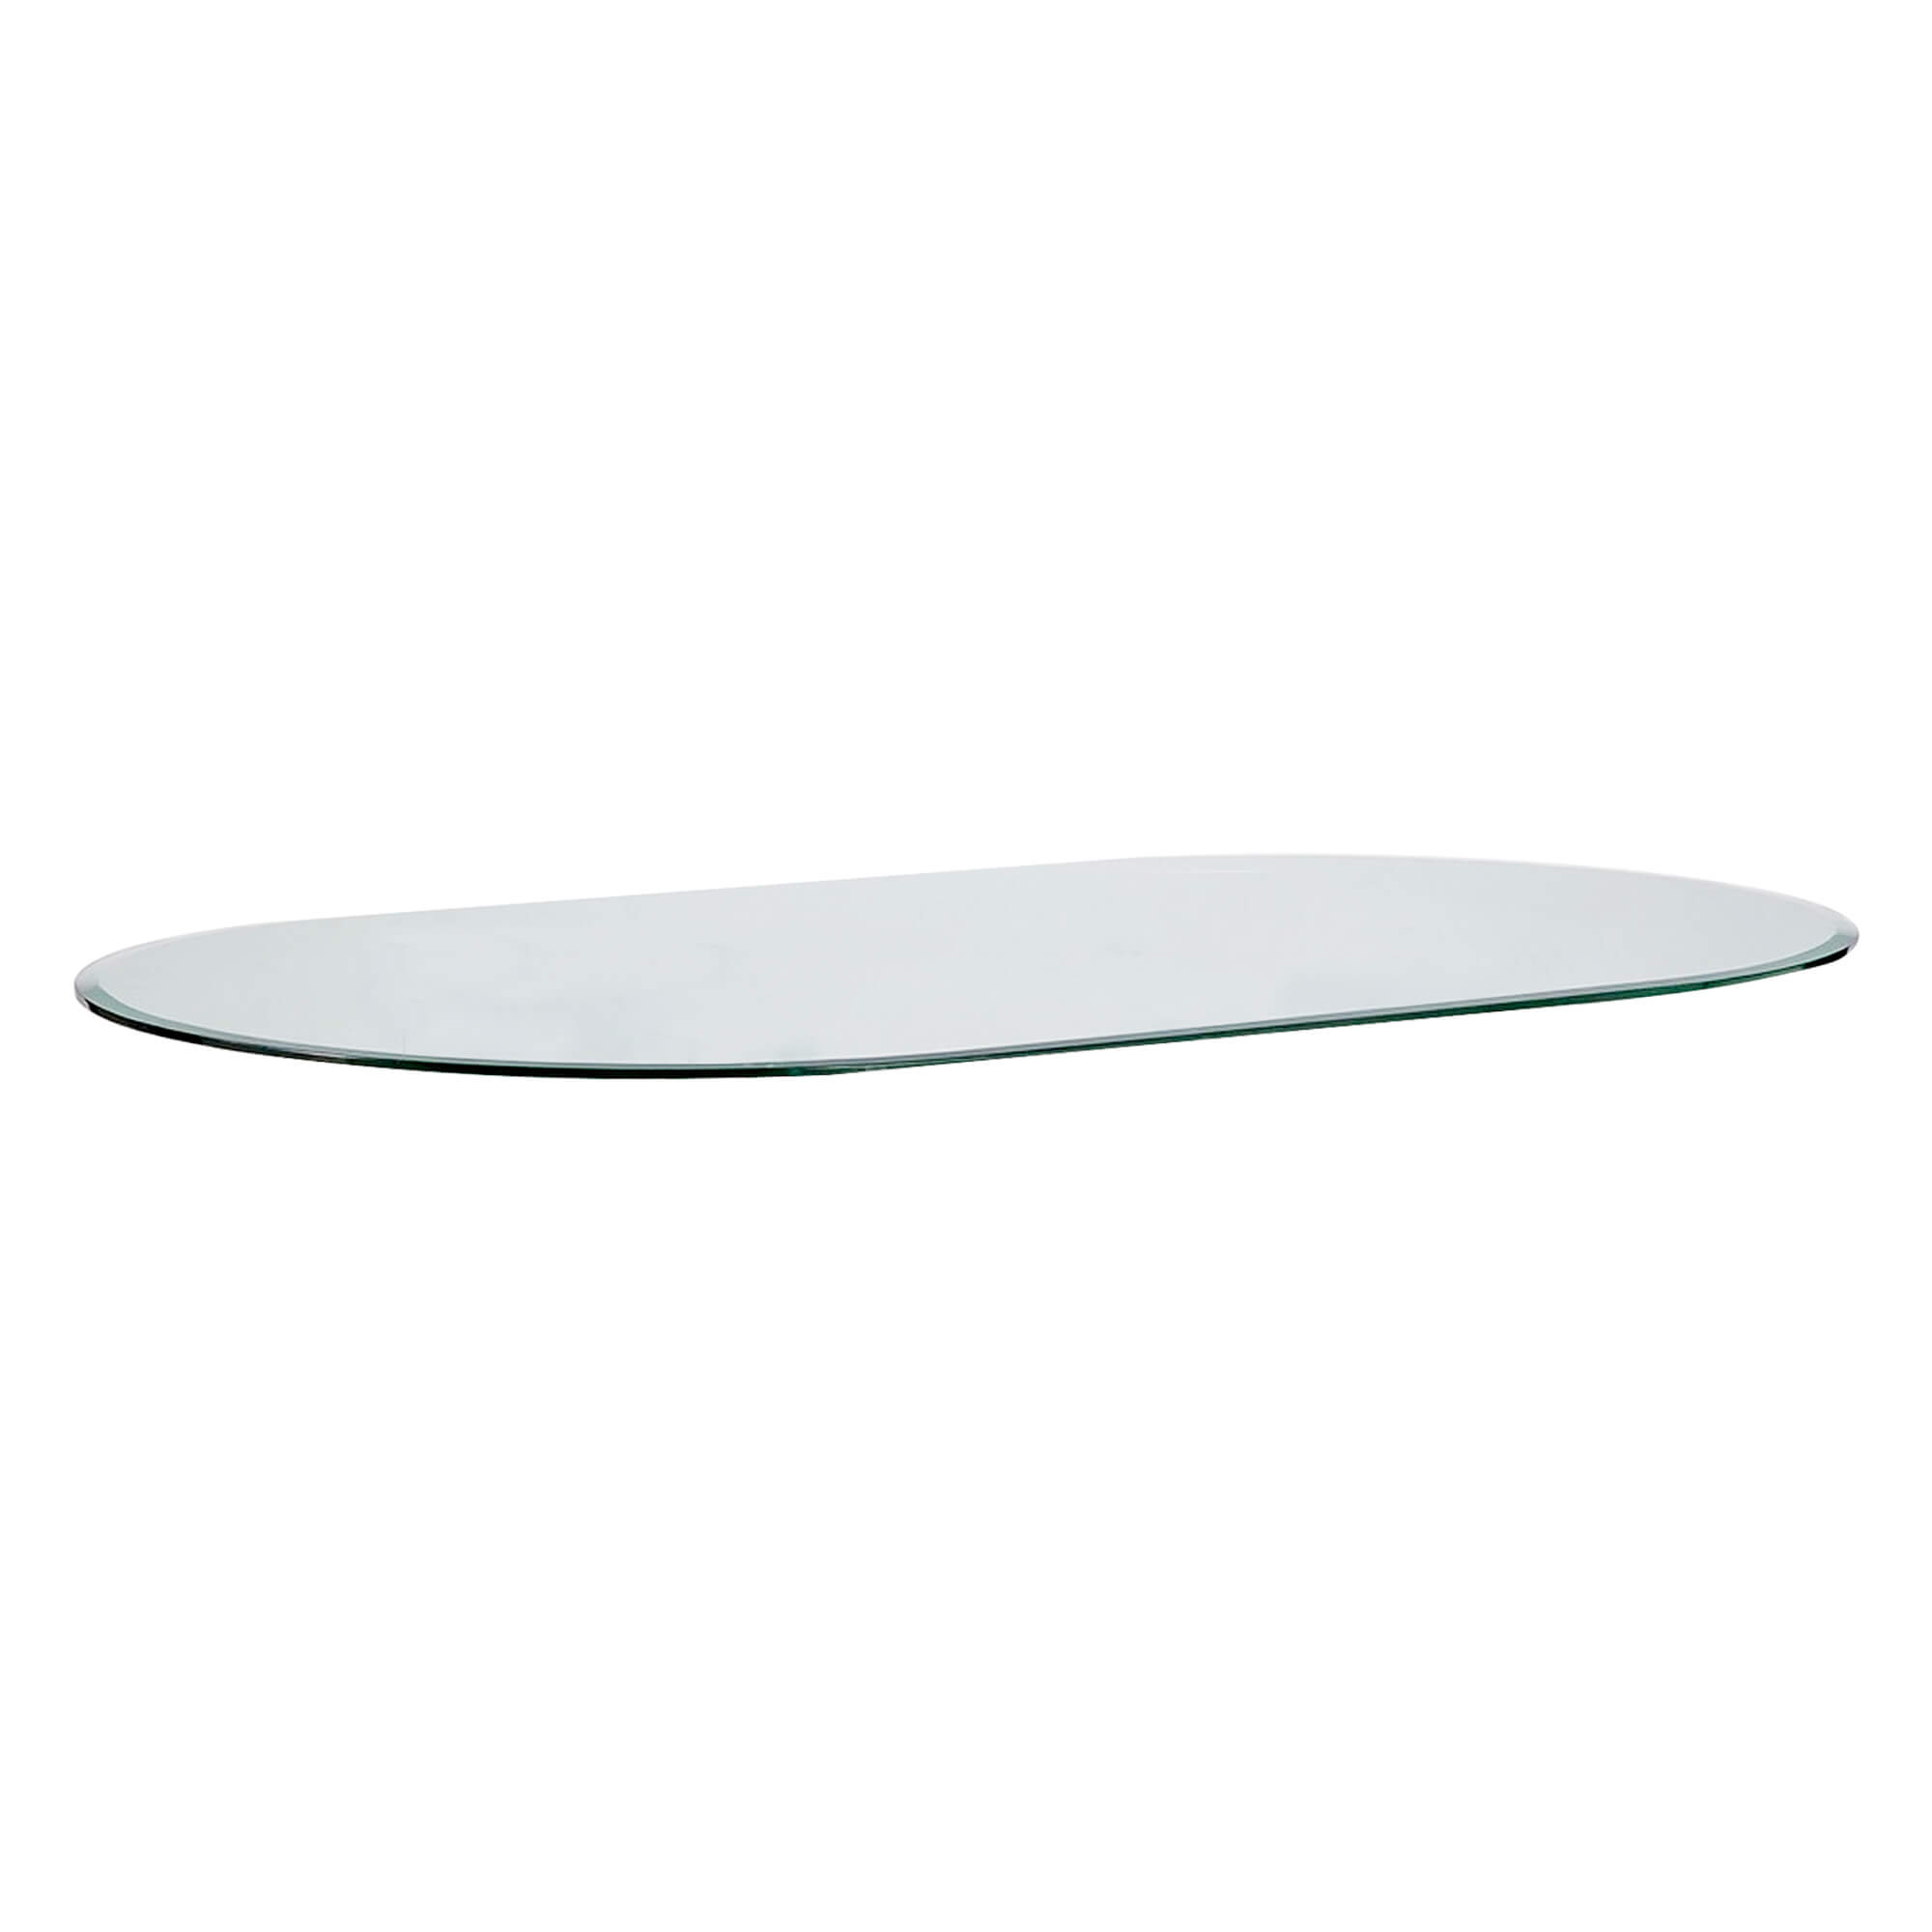 Bon Oval Racetrack Glass Table Top 1 2 034